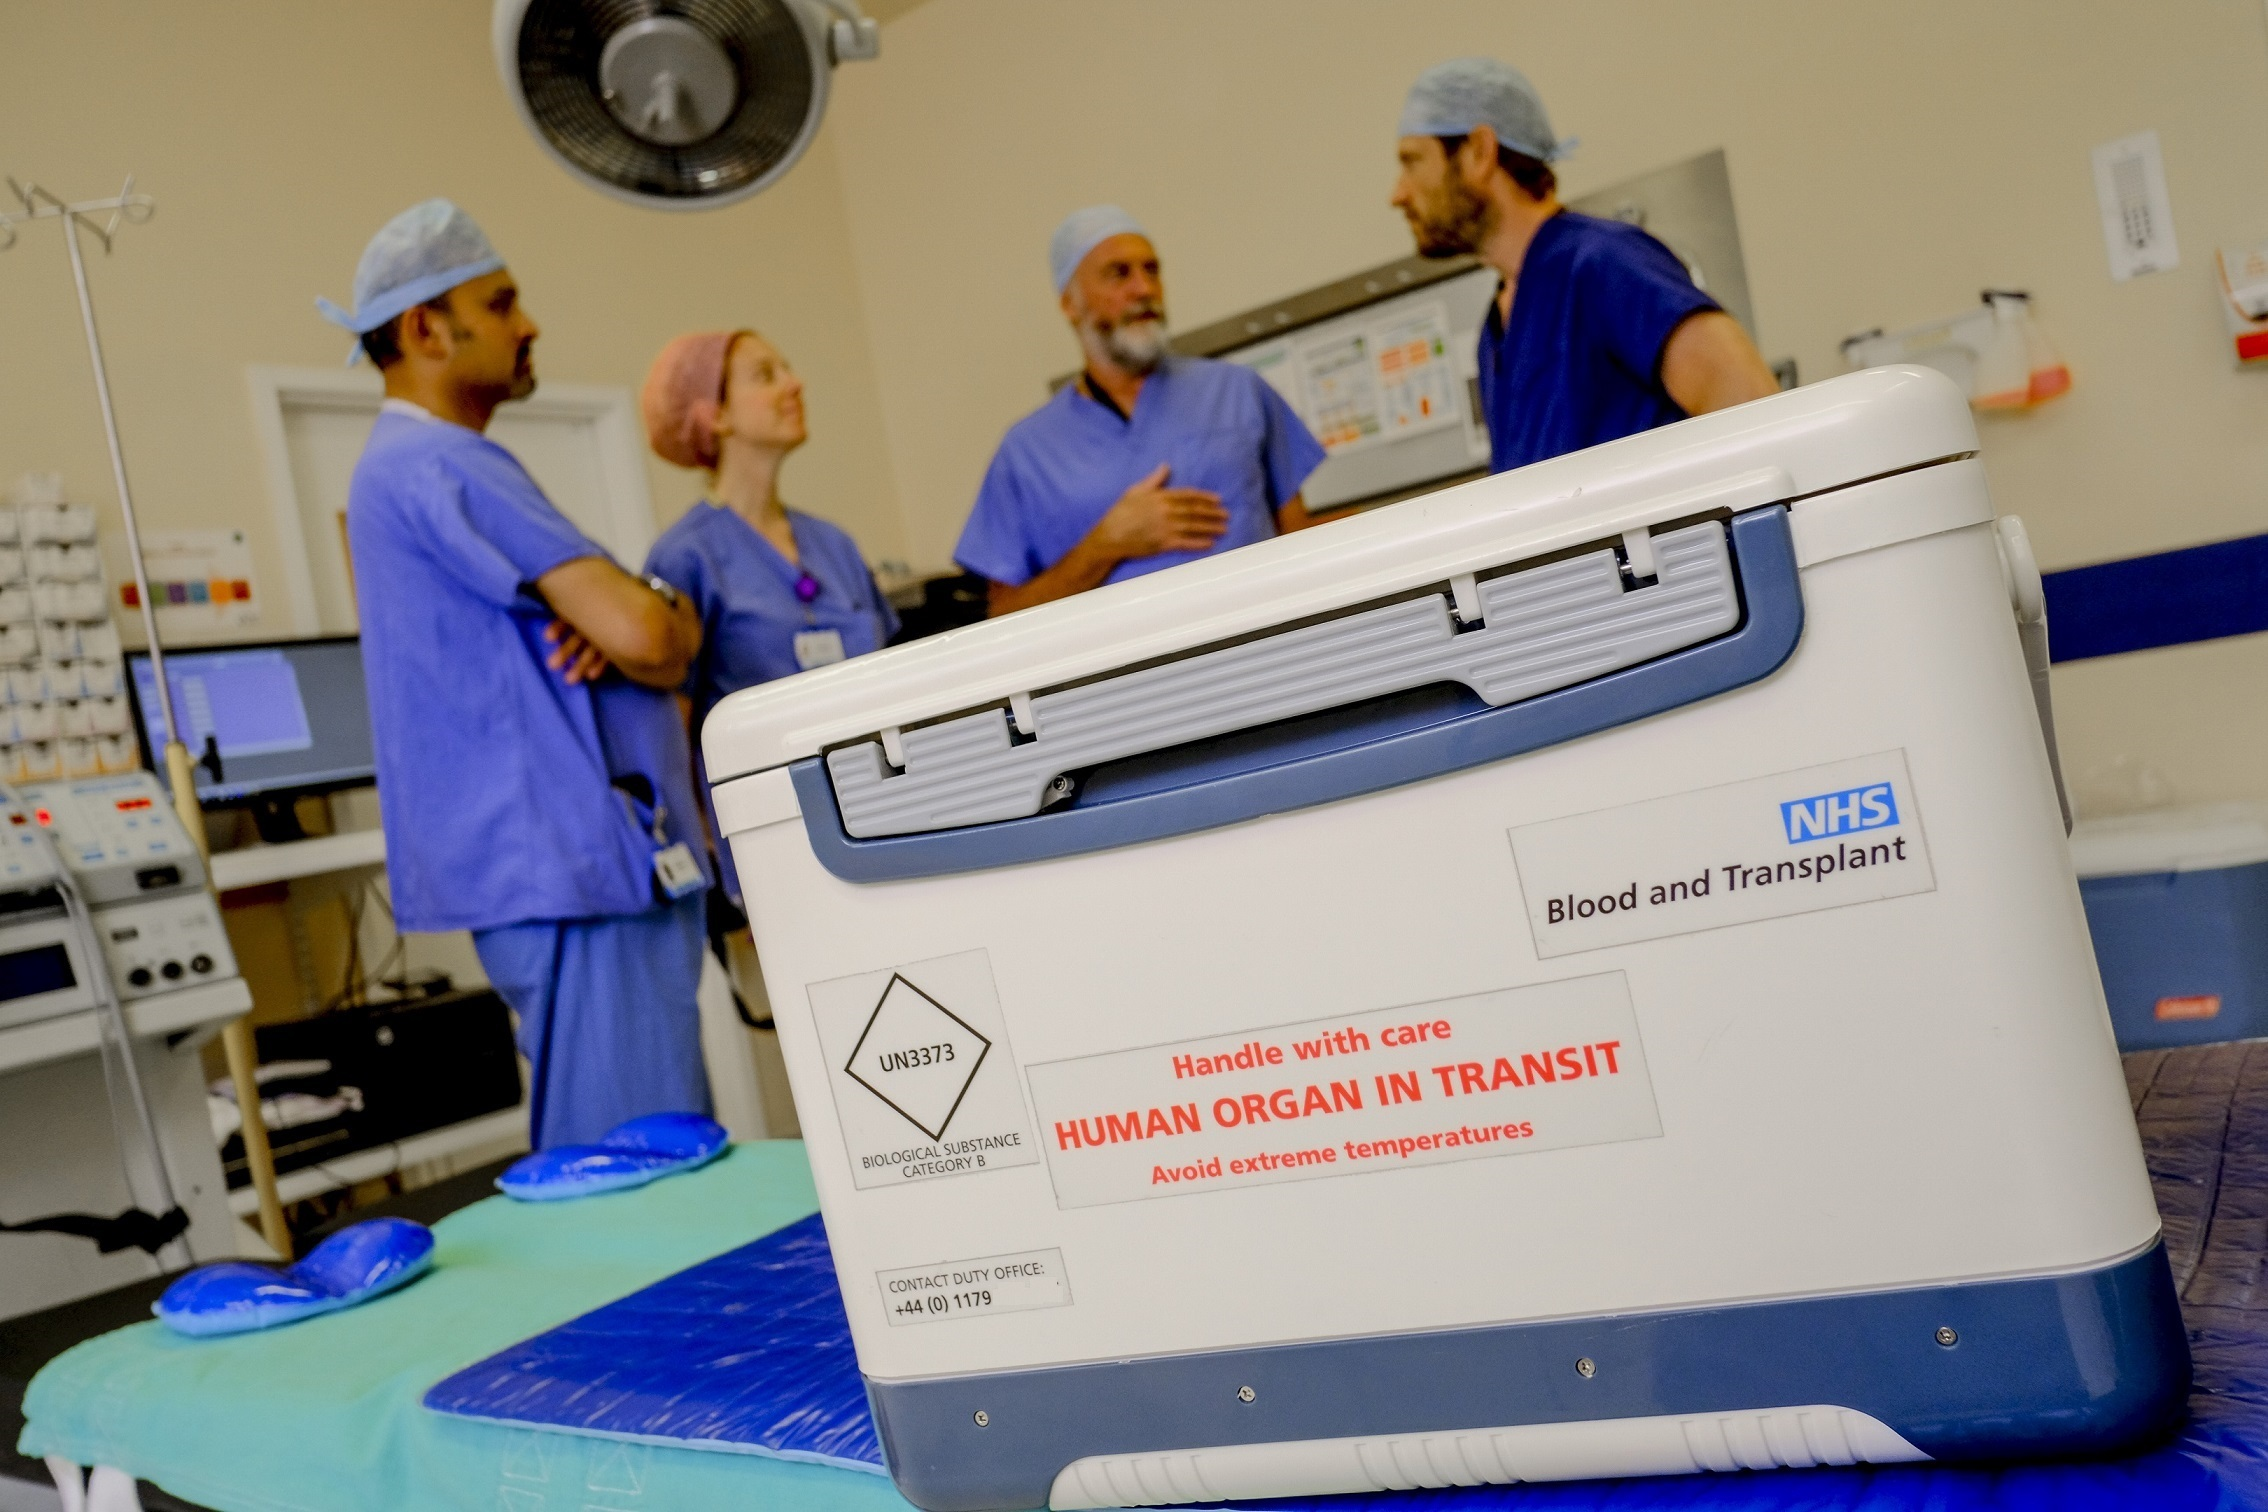 NHS Blood and Transplant revealed 31 people from Dudley borough are on the organ transplant waiting list.